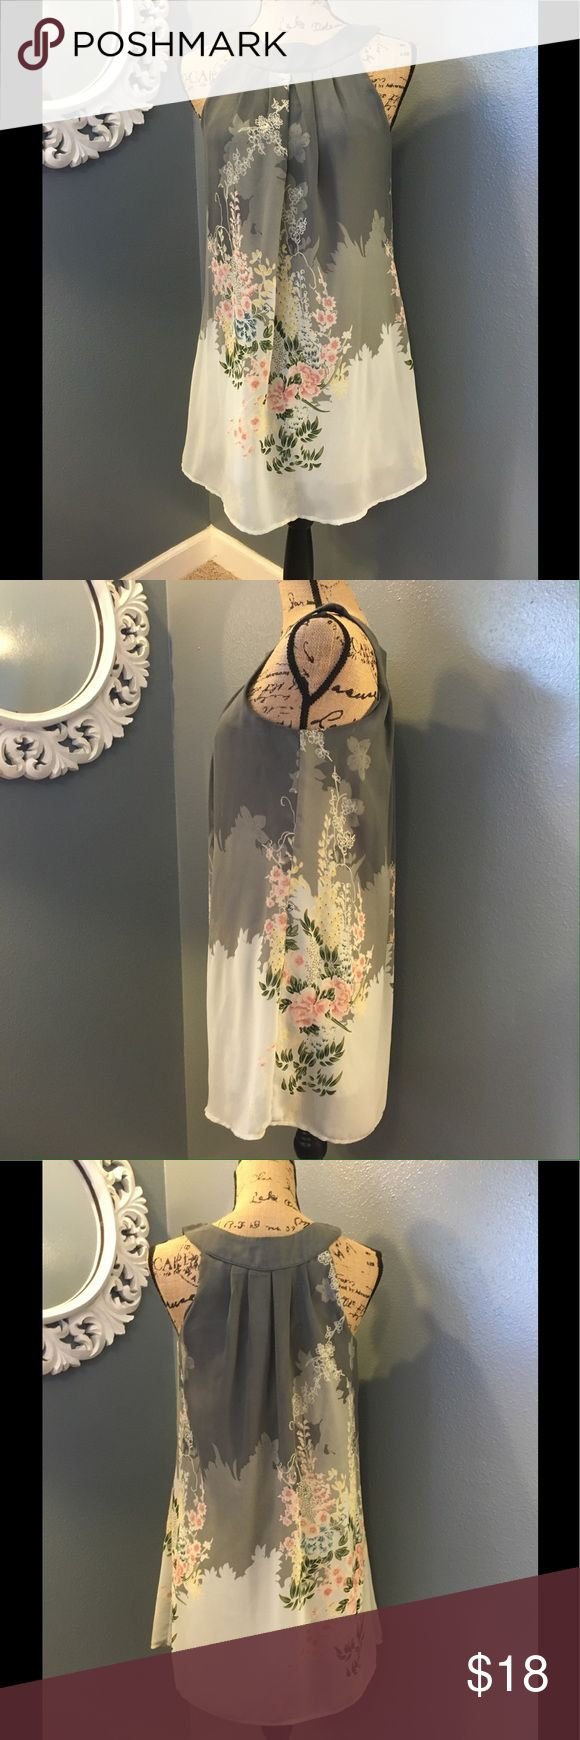 """XXI ethereal gray flower print tunic top or dress Sleeveless gray and cream colors. Loose fitting and gauzy flowing fabric with light scattering of blossoms. It is fully lined. The length gives some versatility in styling with sandals as a dress or with leggings. Pull on, no closures. Excellent condition, 31"""" in length. XXI Dresses"""